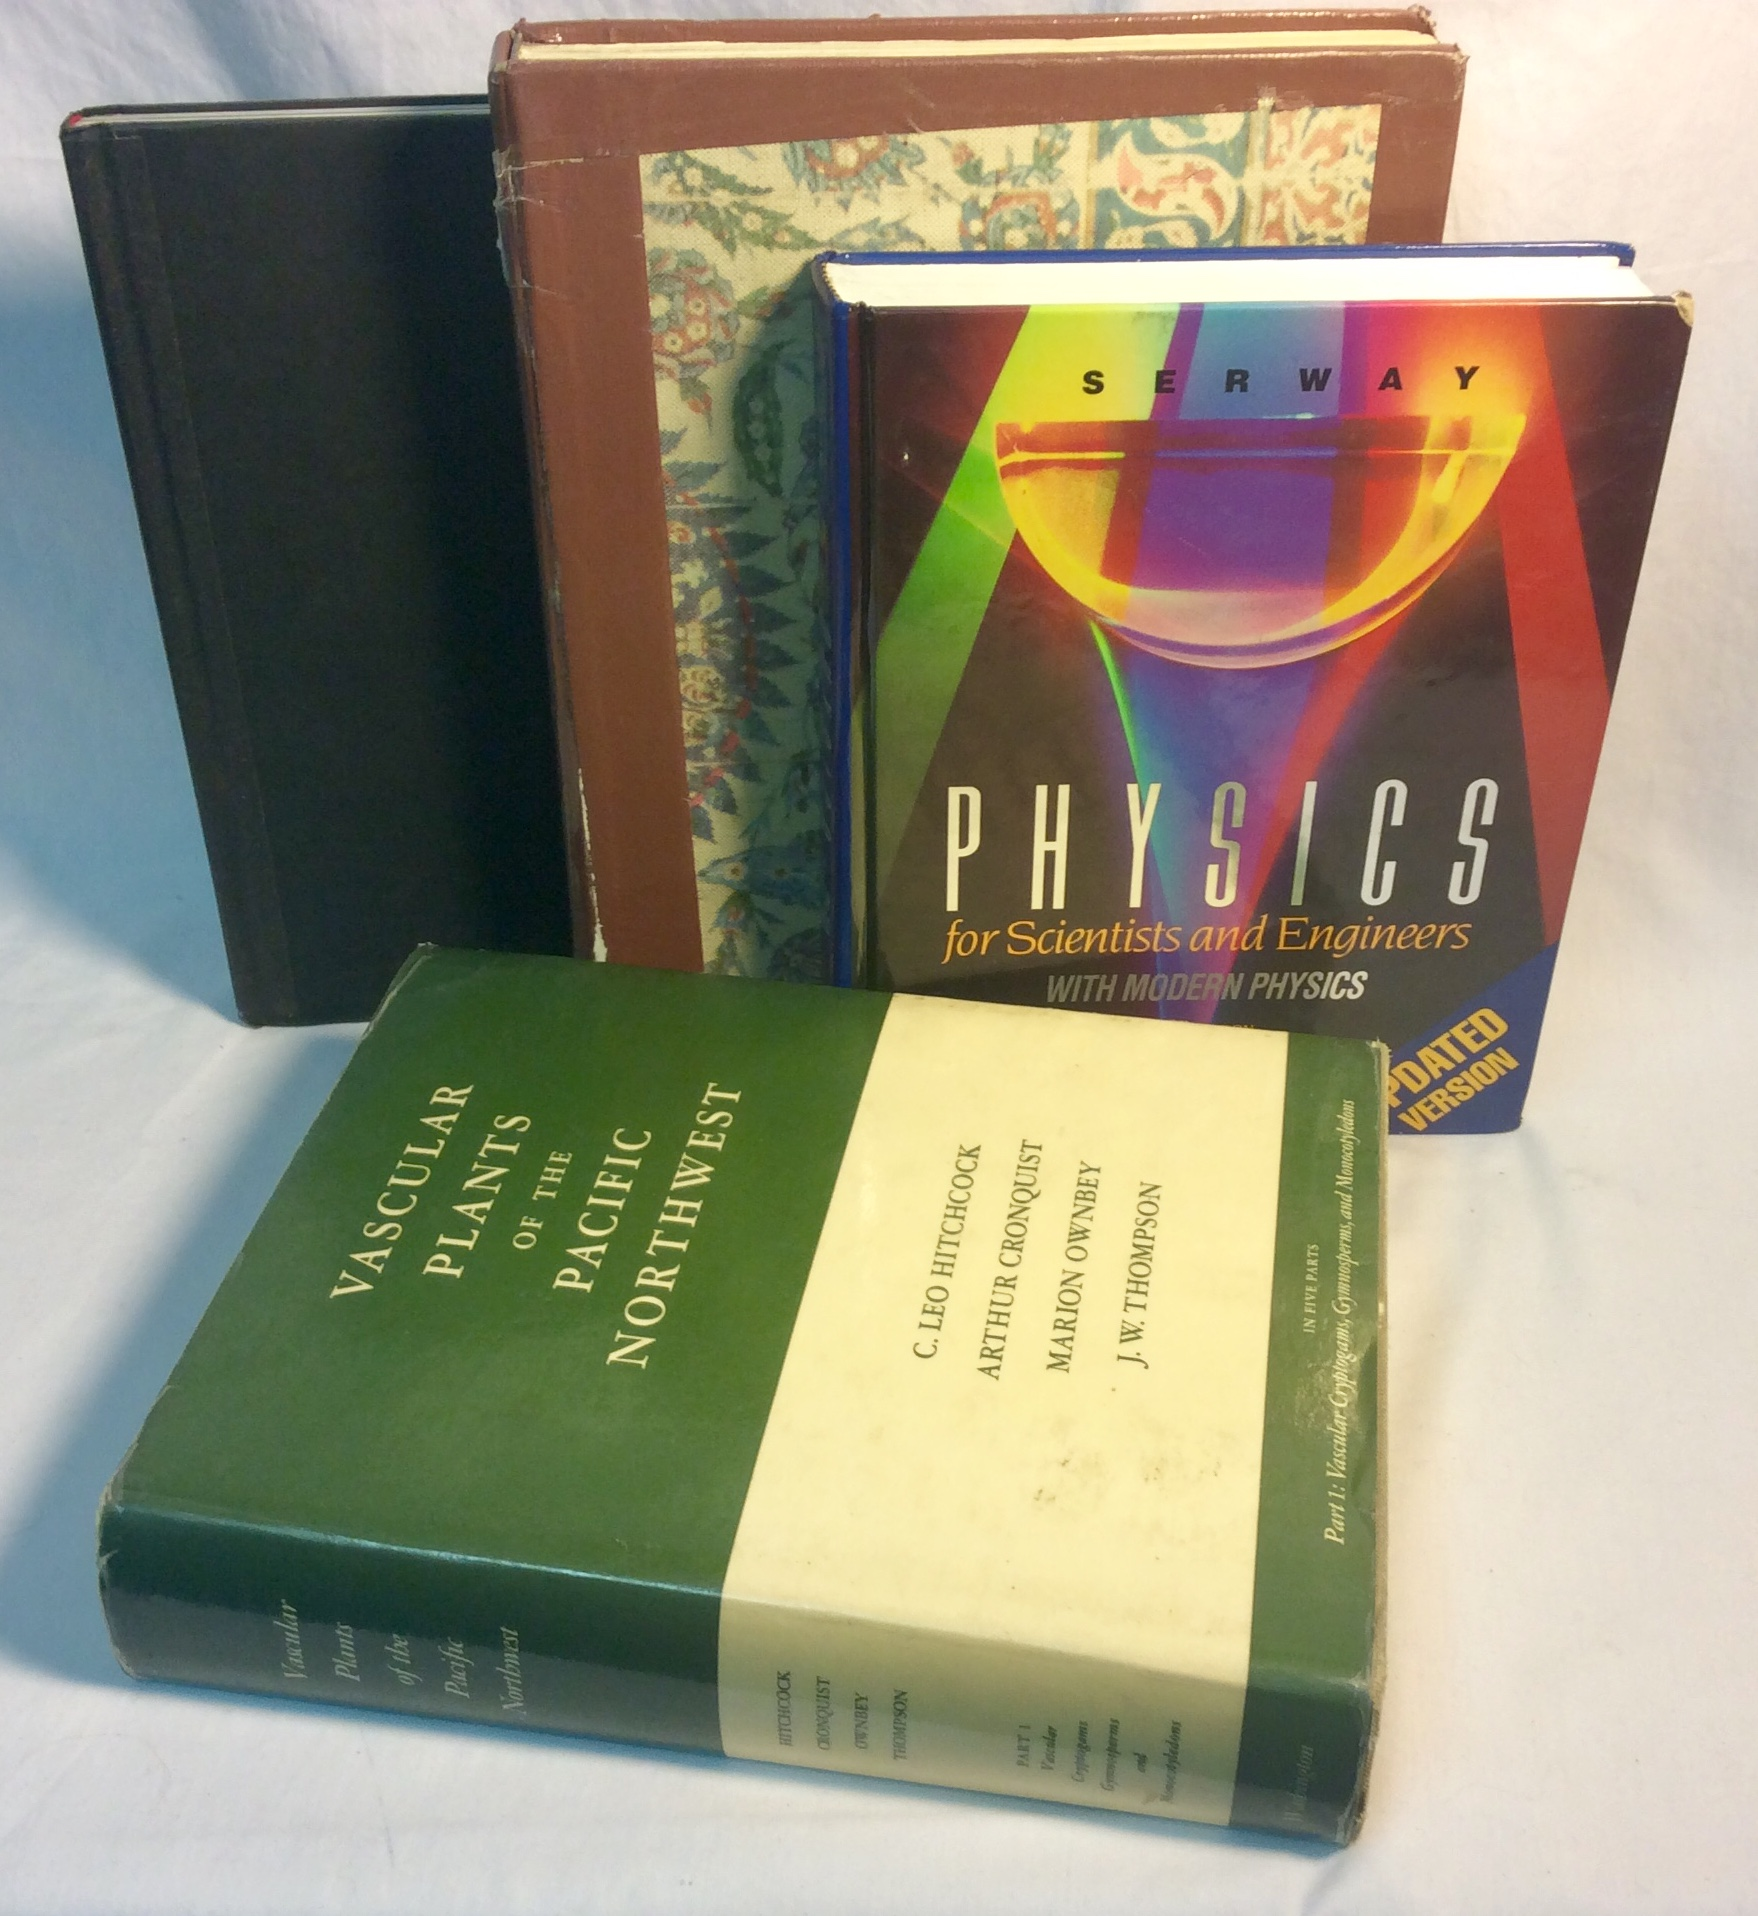 Assorted large hardcover books